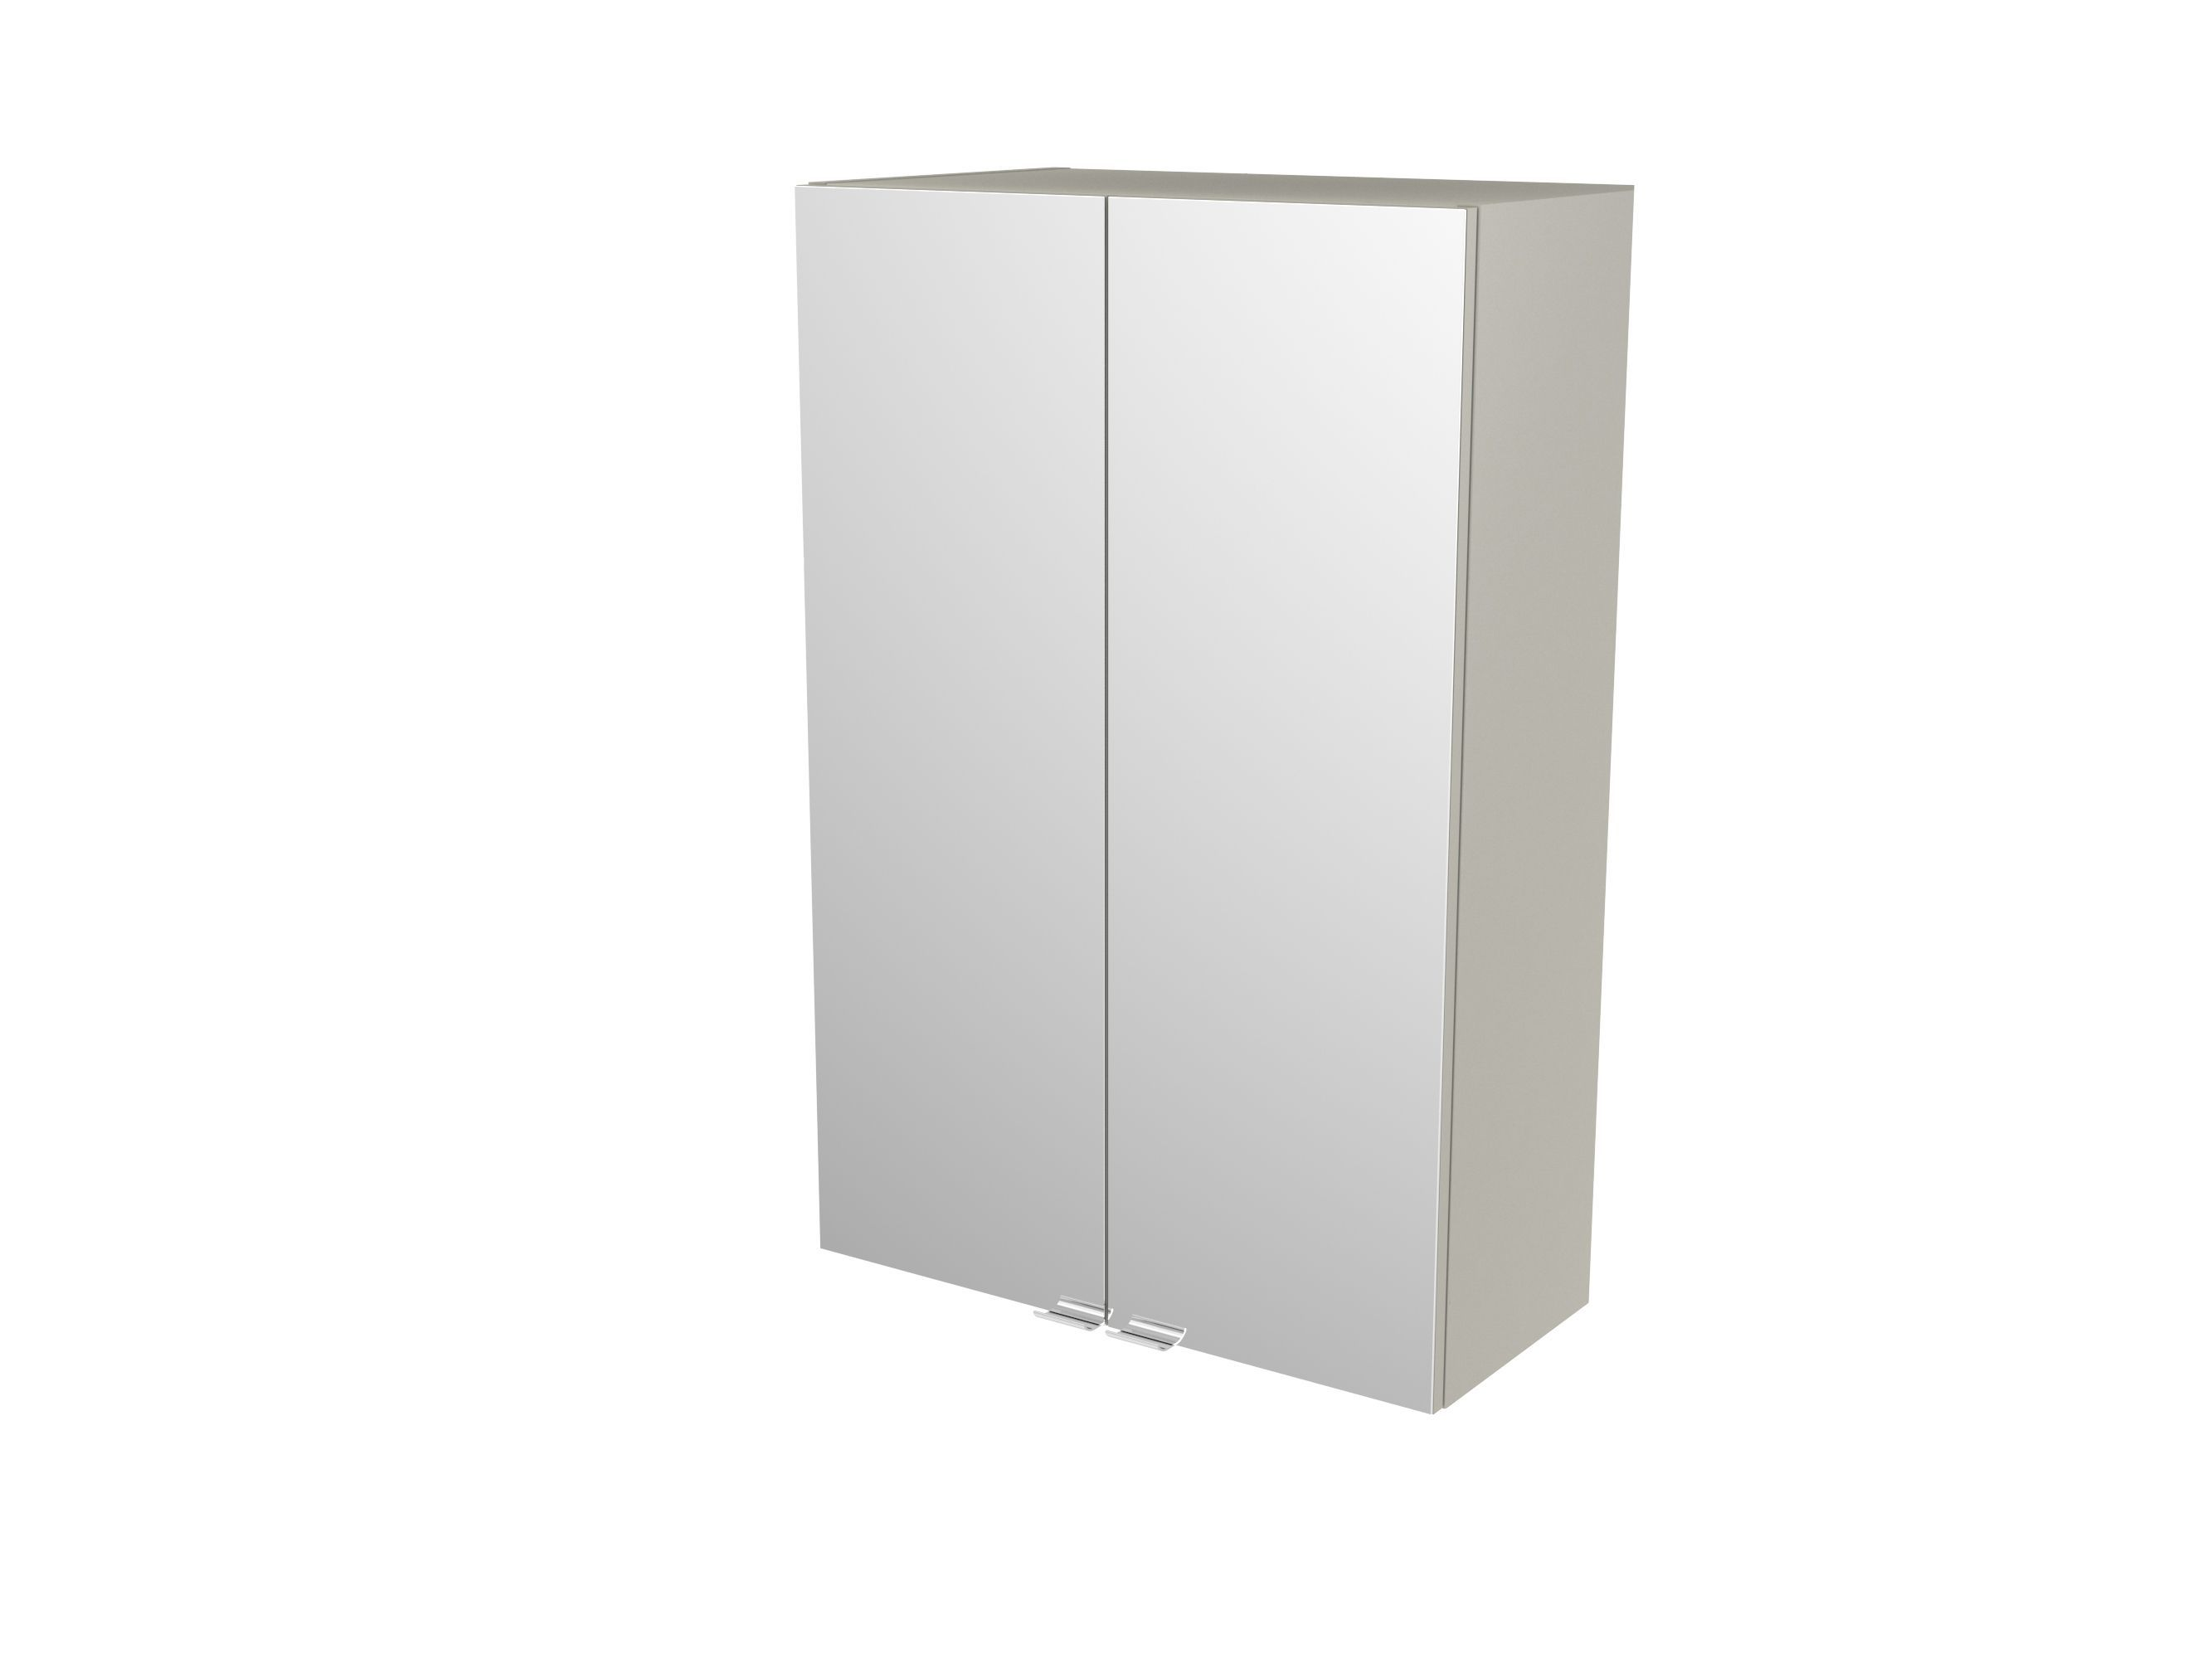 Cooke & Lewis Imandra Gloss Taupe Deep Mirrored Wall Cabinet, (w)600mm